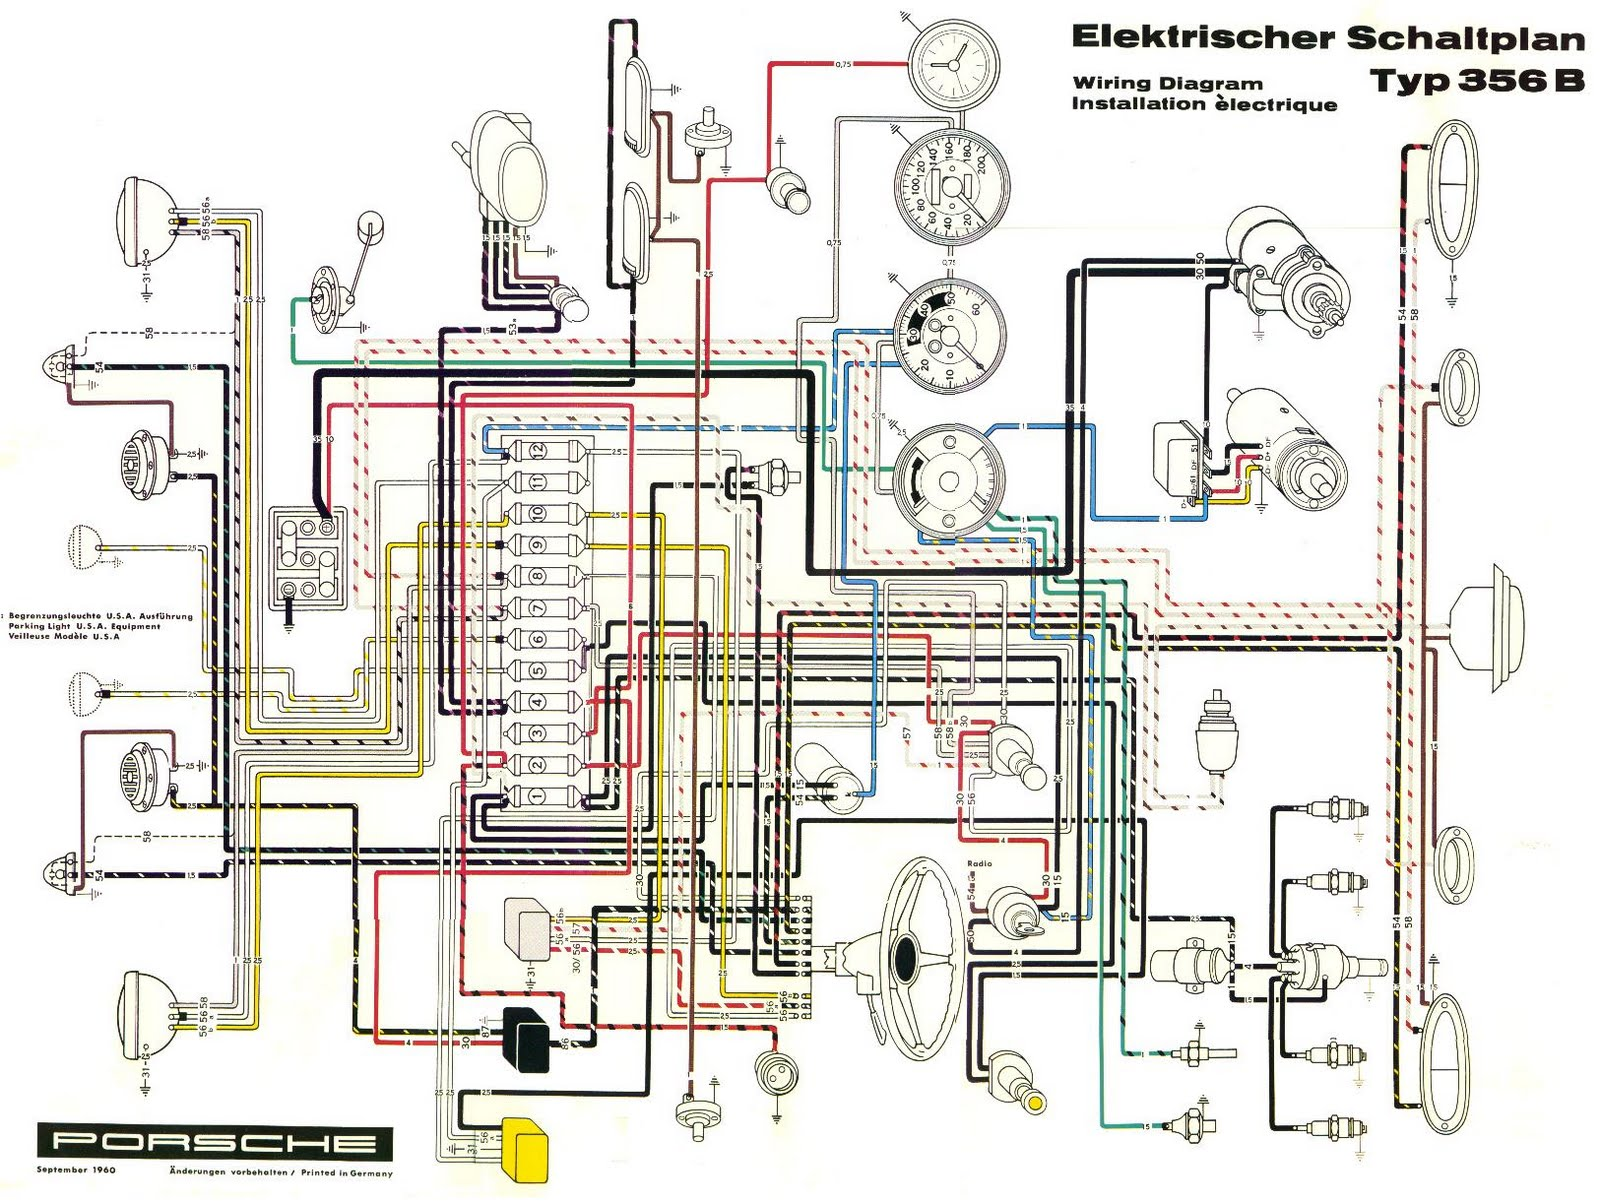 Porsche+356B+Wiring+Diagram?t=1508746814 porsche car manuals, wiring diagrams pdf & fault codes porsche 924 wiring diagram at virtualis.co